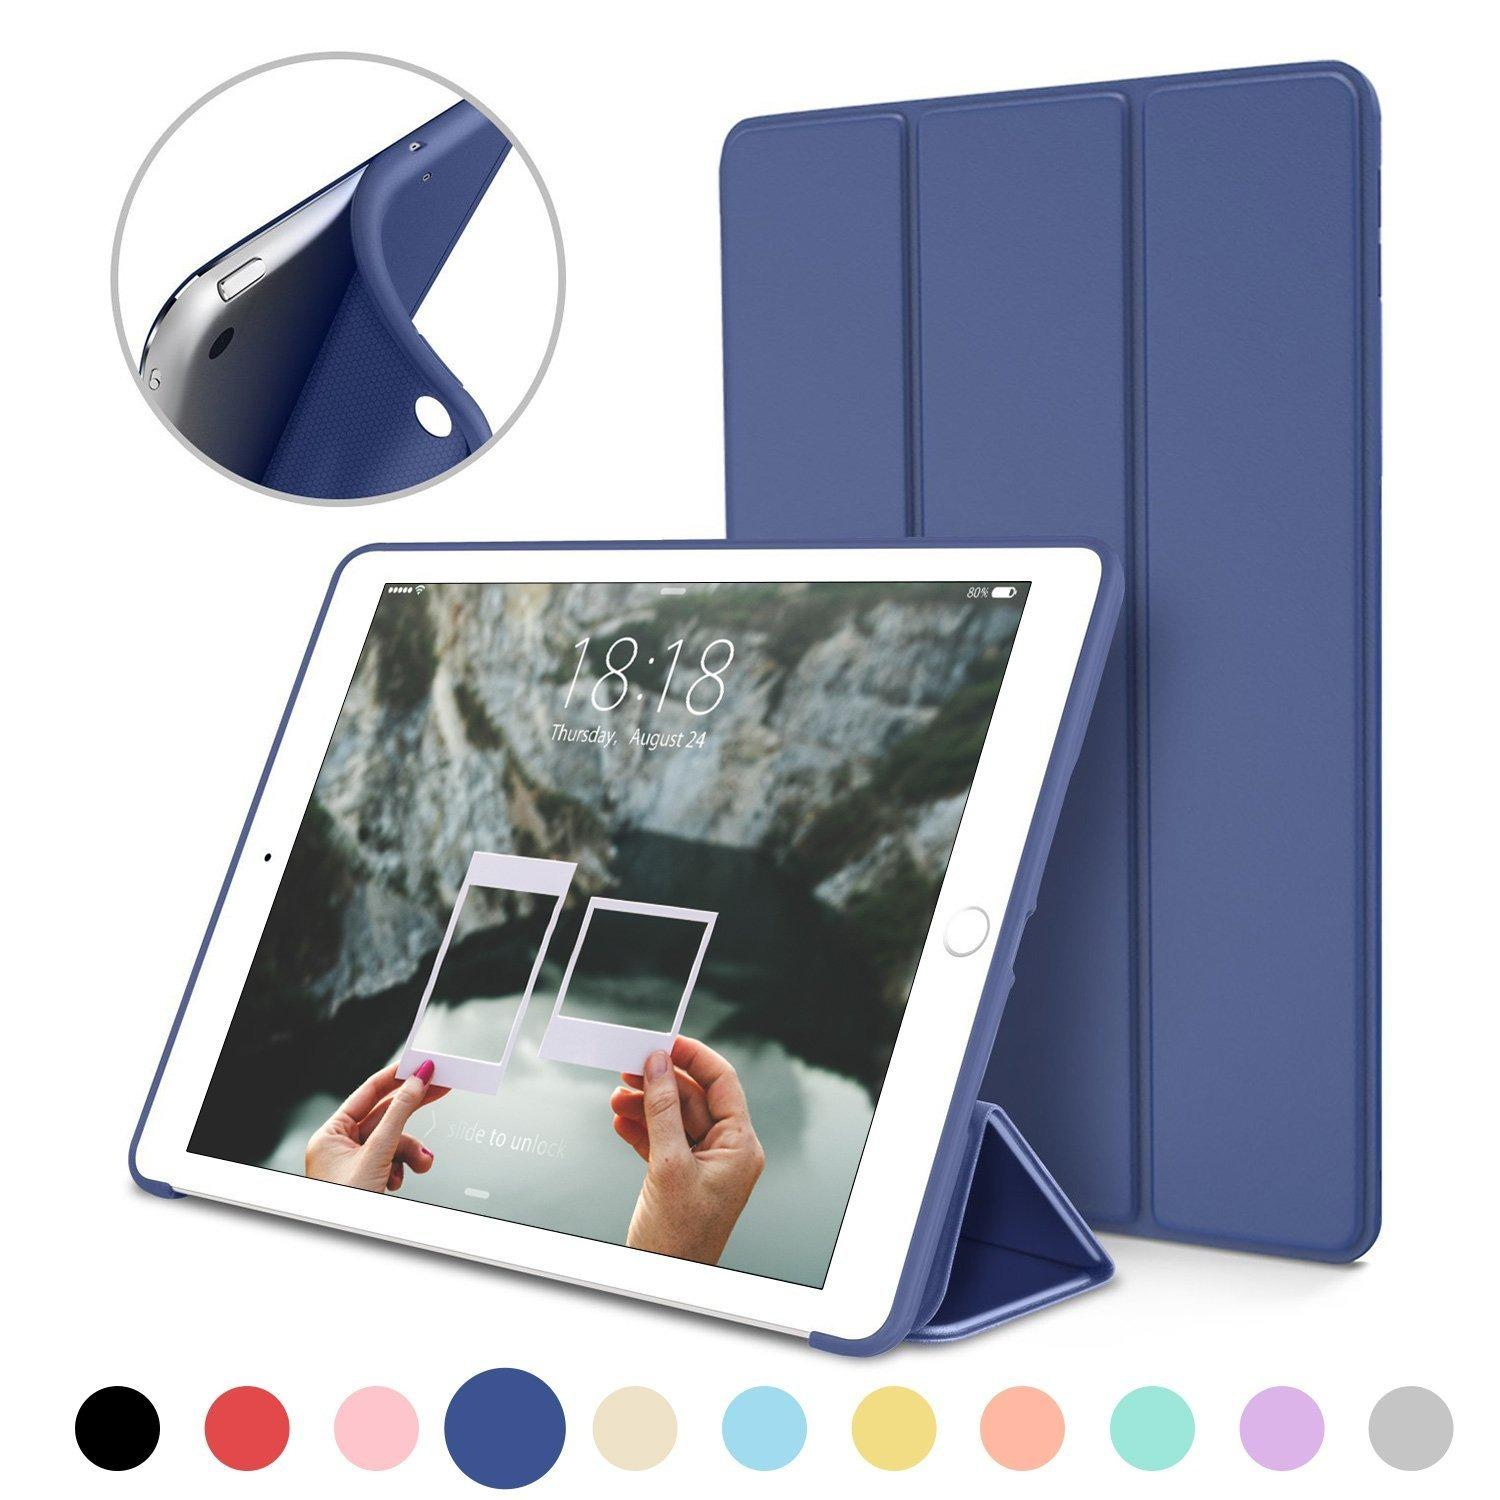 Bao da silicone dẻo - Smart cover dành cho iPad Mini 123/ iPad Mini 4/ iPad Air/ iPad Air 2/...